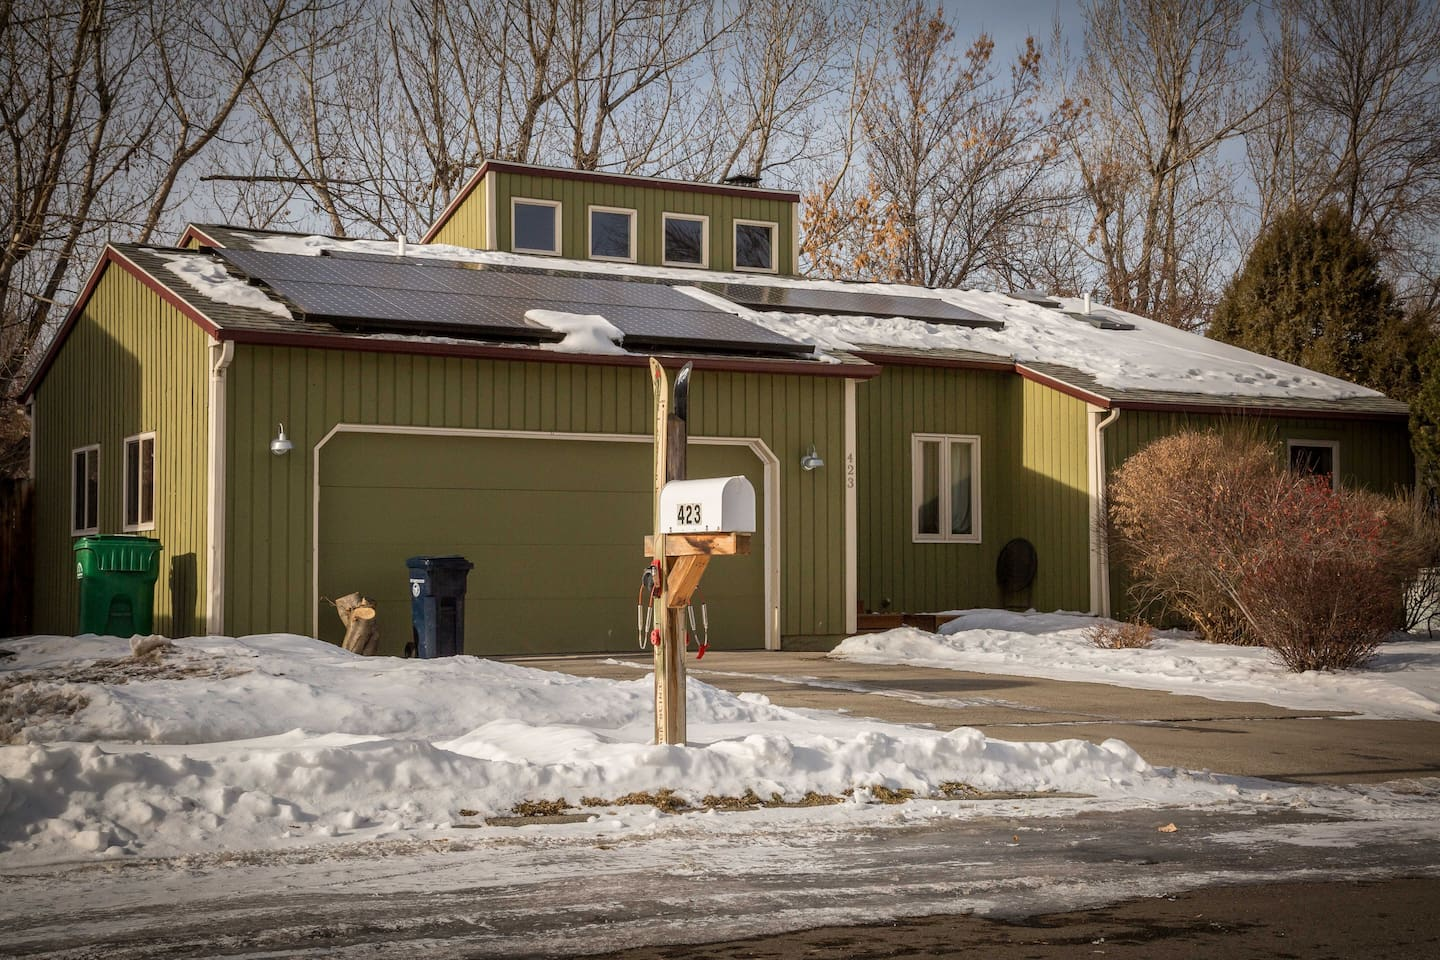 Your vacation home is a single-level, solar-powered, put-your-feet-up dwelling!